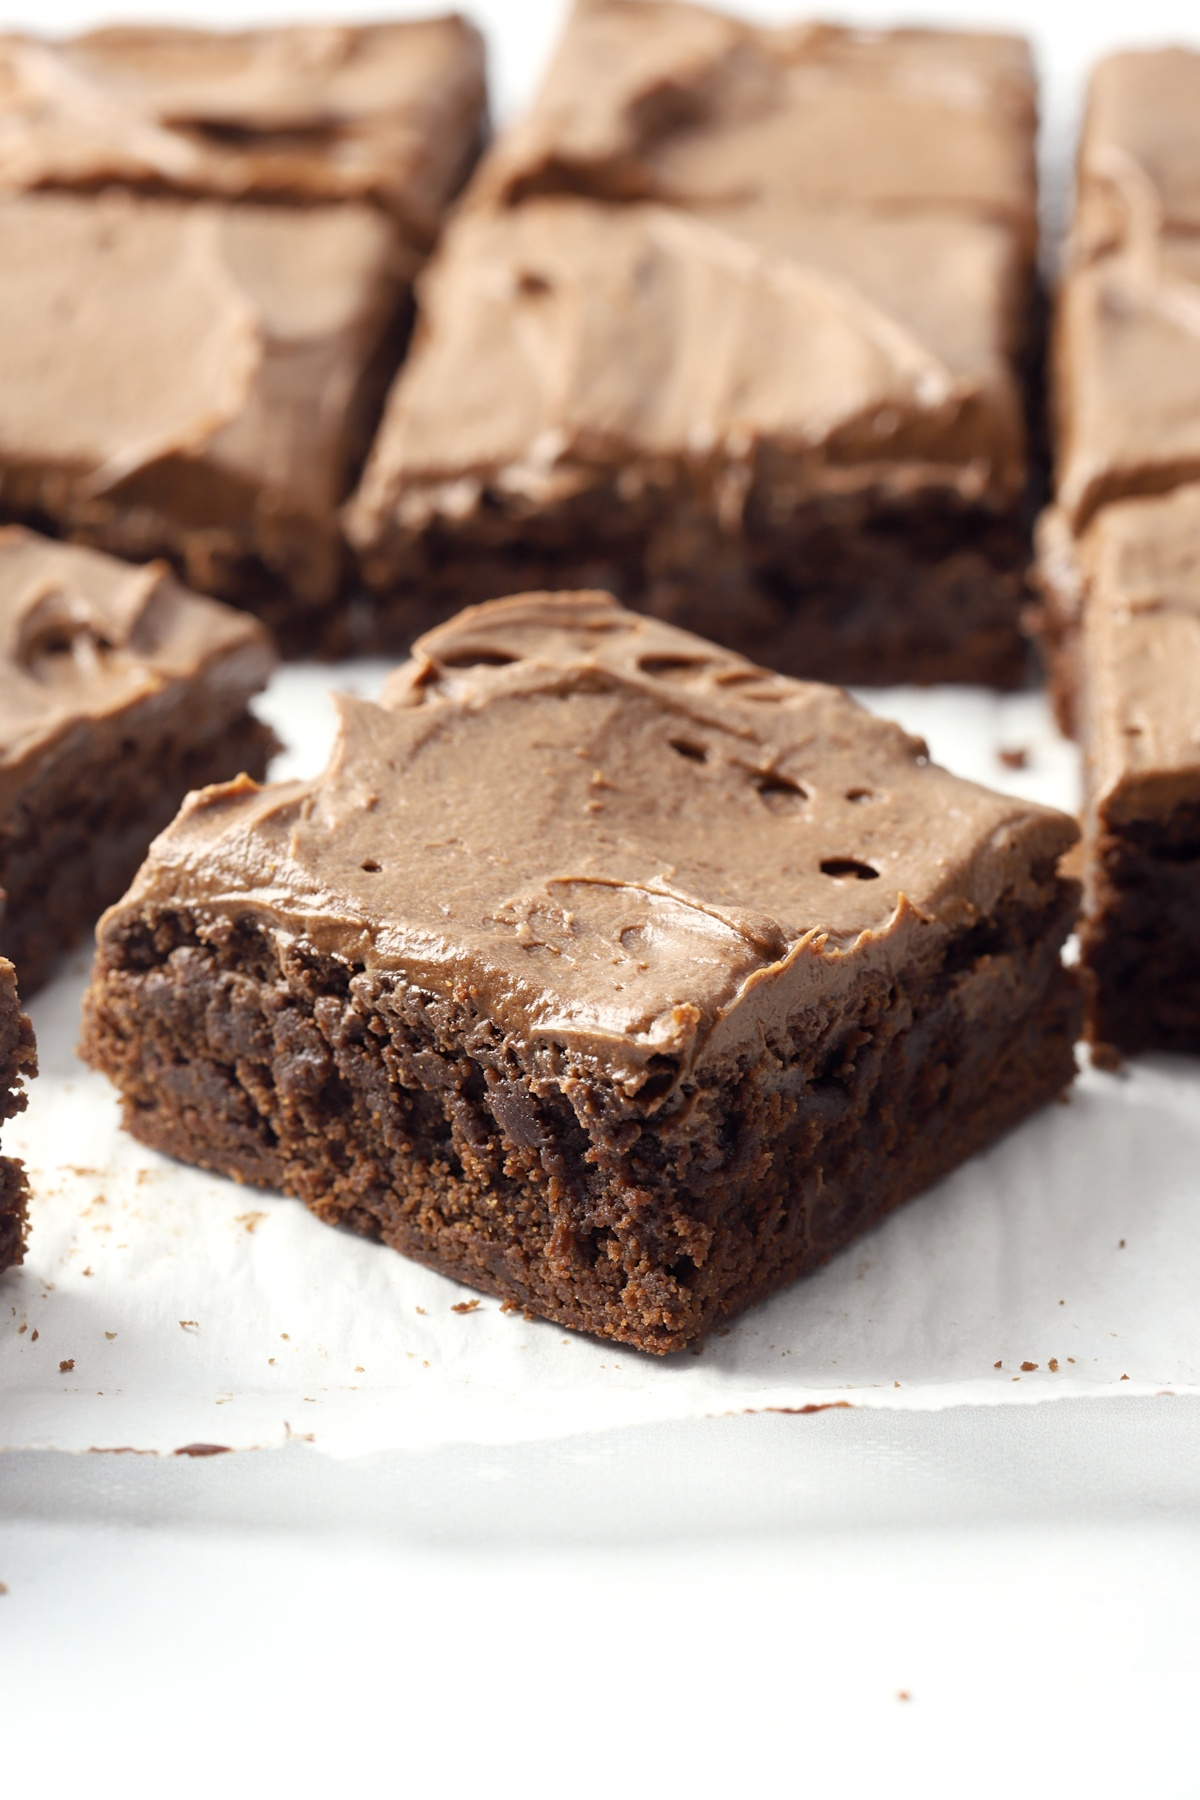 Chocolate frosted brownies on a piece of parchment paper.